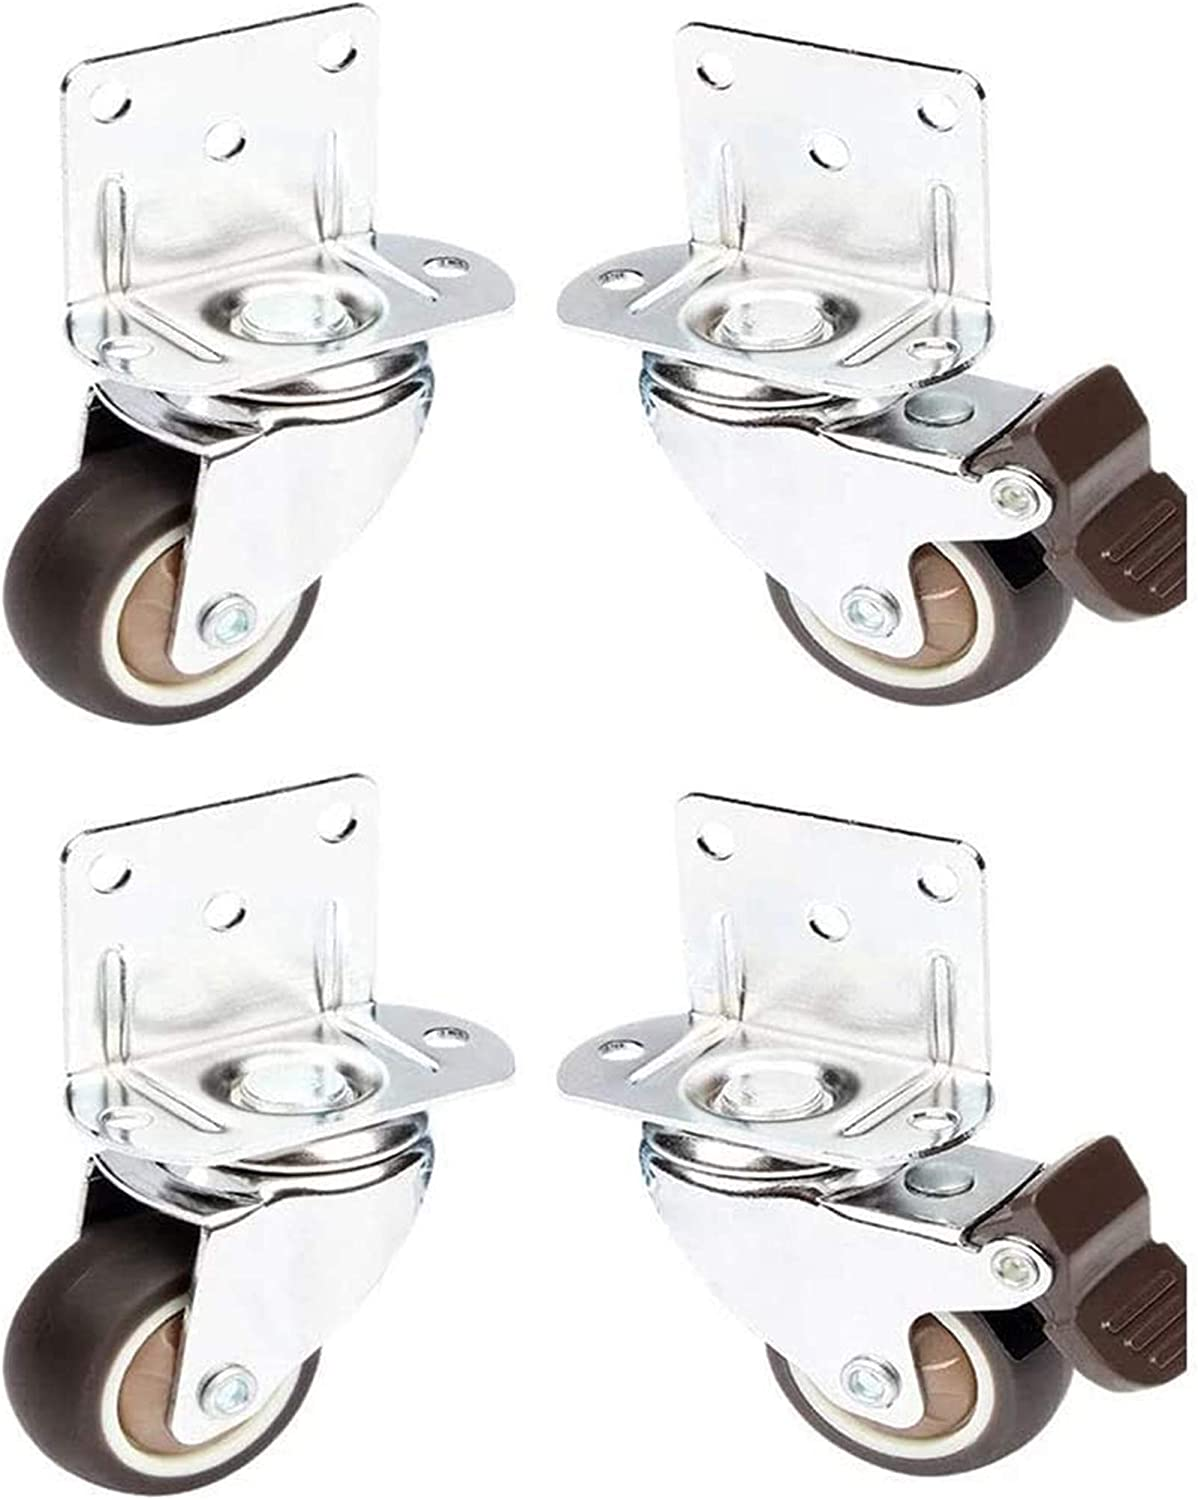 Popular shop is the lowest price challenge ZAMAX Sale SALE% OFF Swivel Caster Wheels 4 Pieces with Without 2 Bra Brake